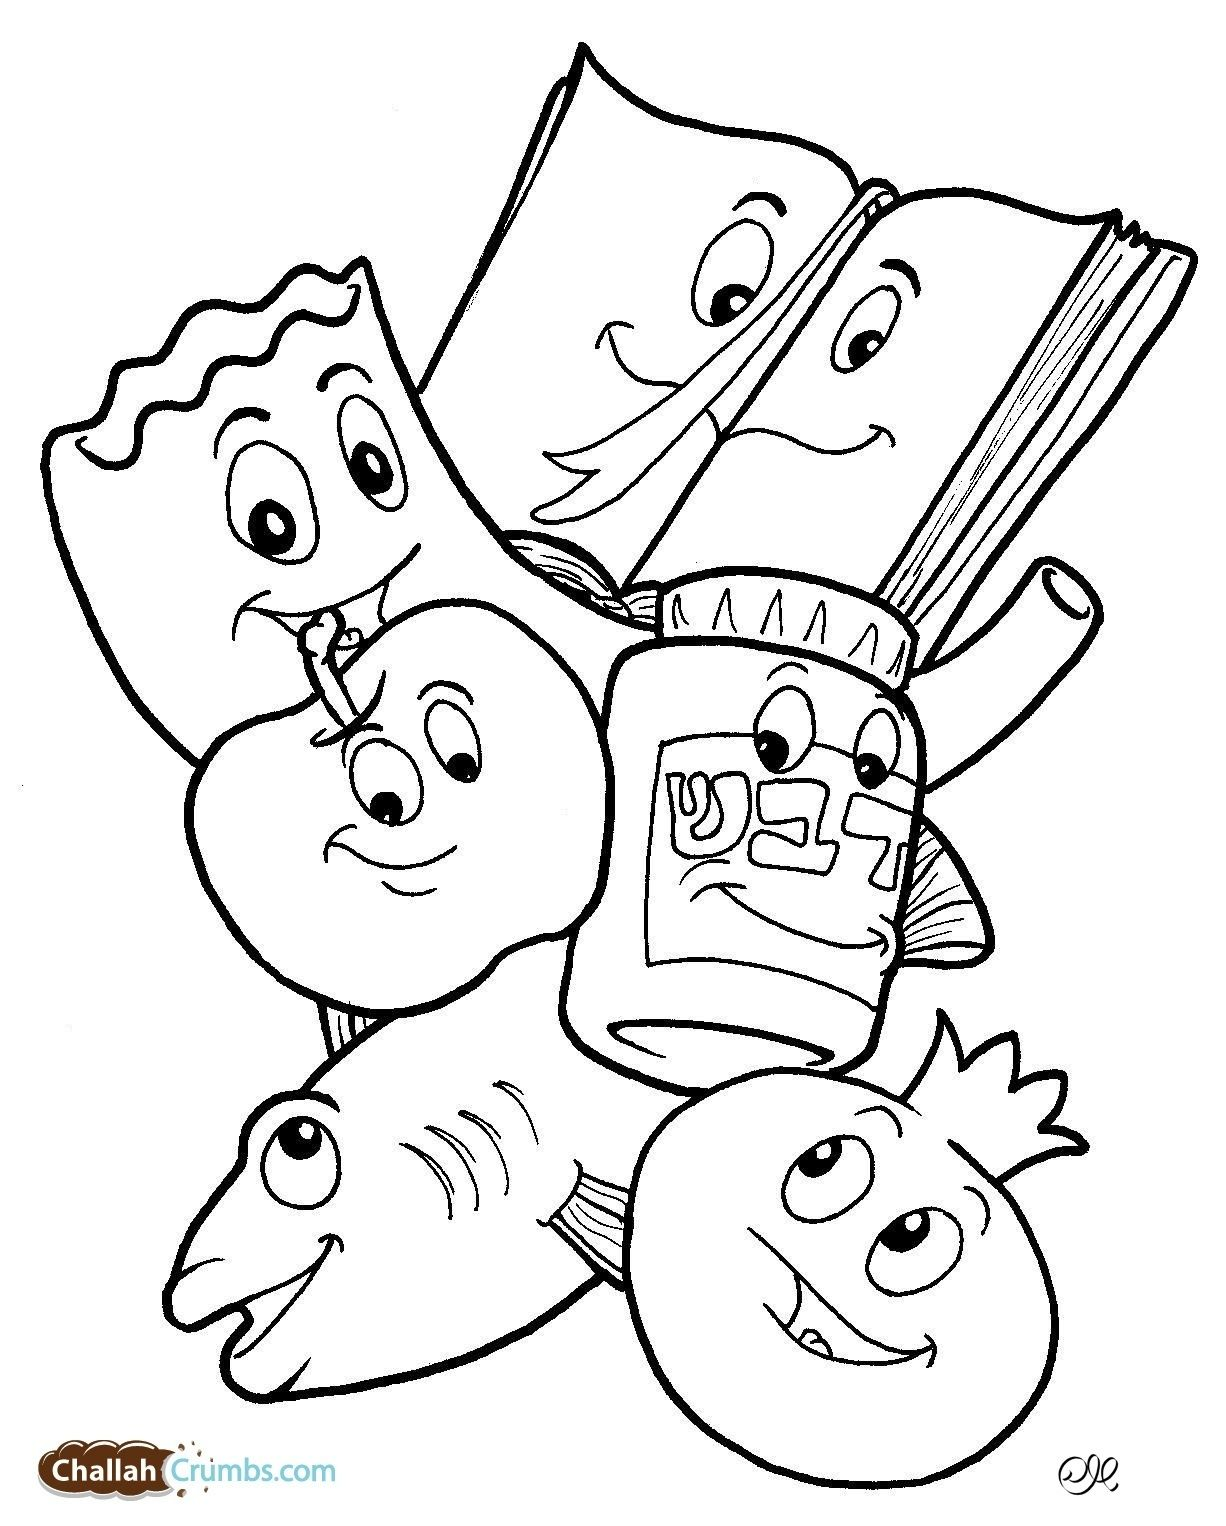 Rosh Hashanah Coloring Pages With Images